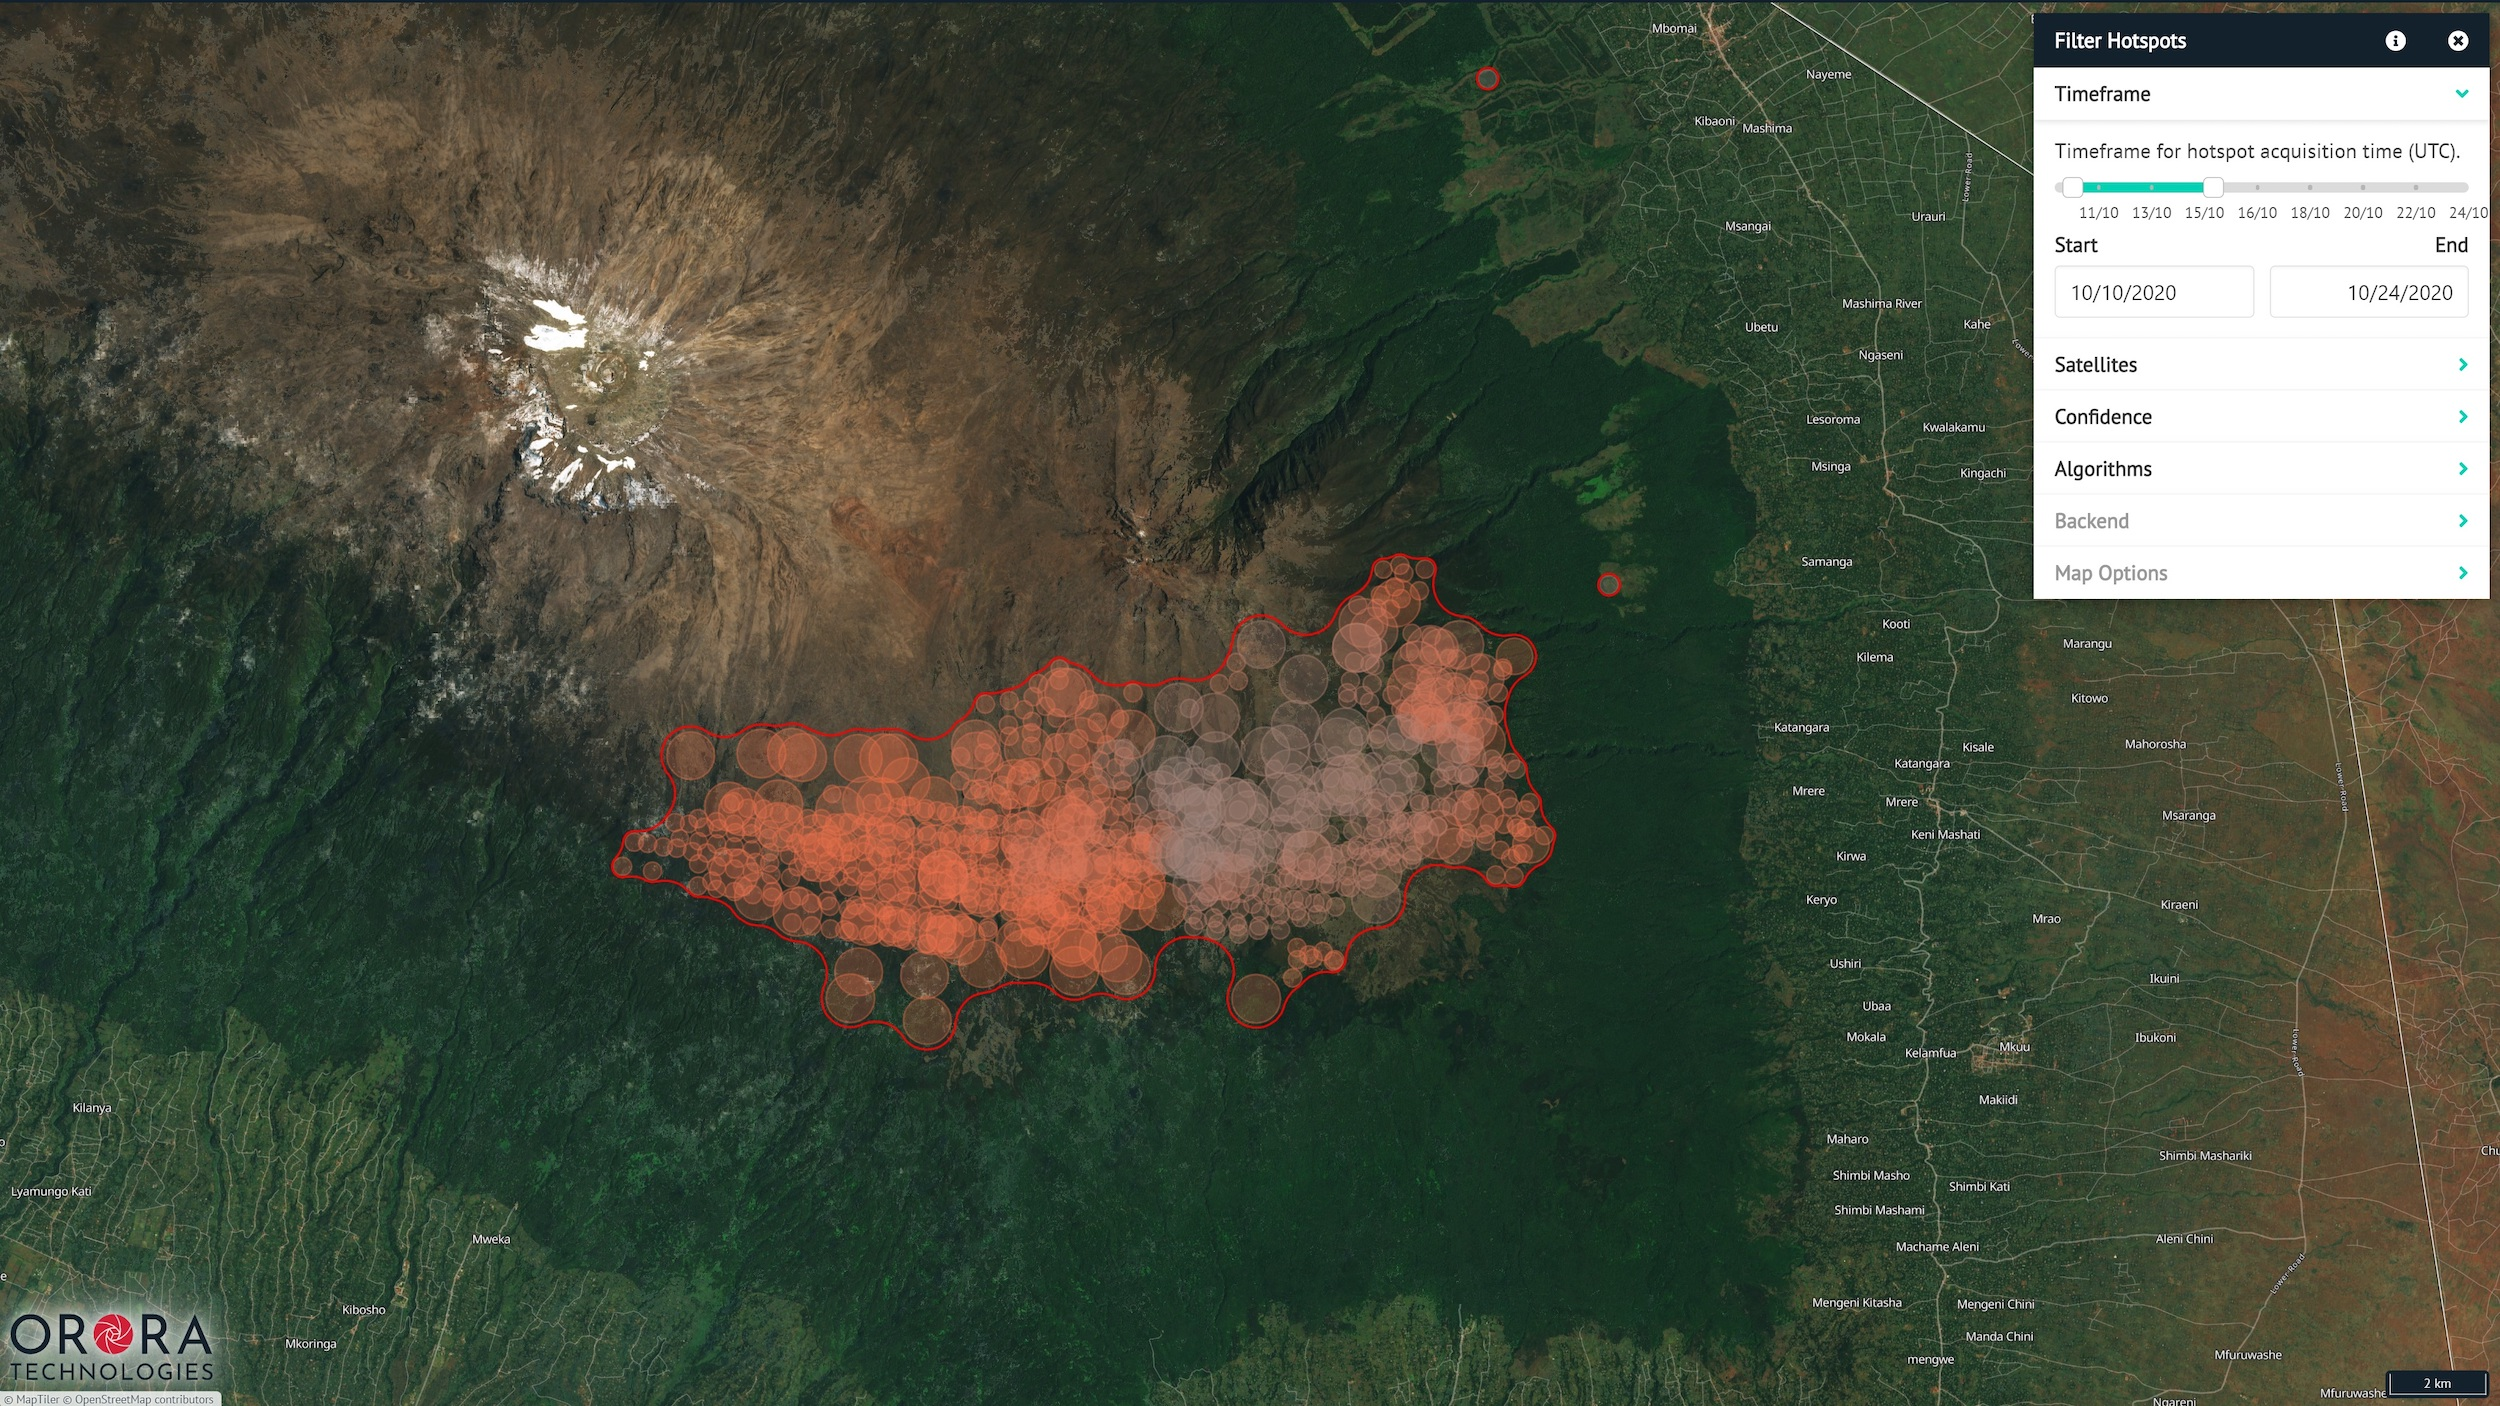 OroraTech's space-based early wildfire warnings spark $7M investment – TechCrunch